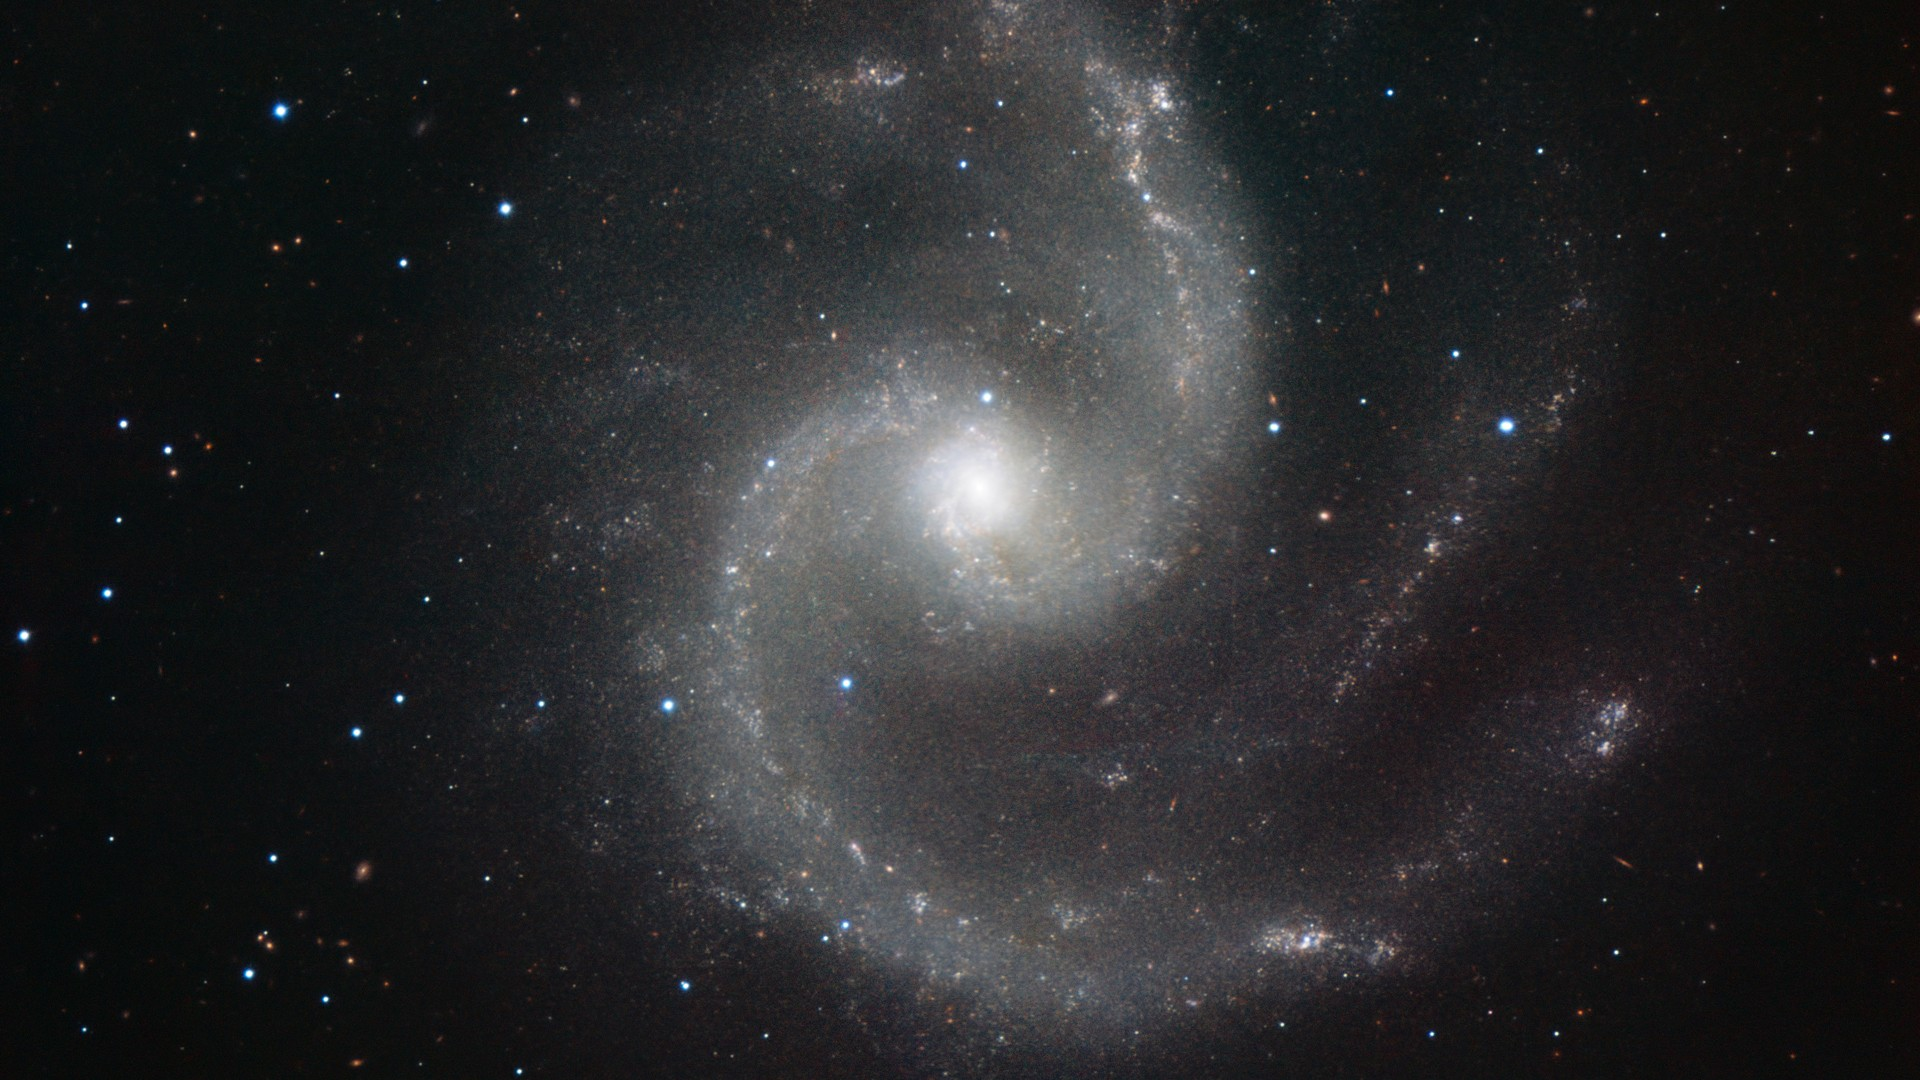 1920x1080 Galaxy in Outer Space desktop PC and Mac wallpaper: wallpaperstock.net/galaxy-in-outer-space_wallpapers_35049_1920x1080...